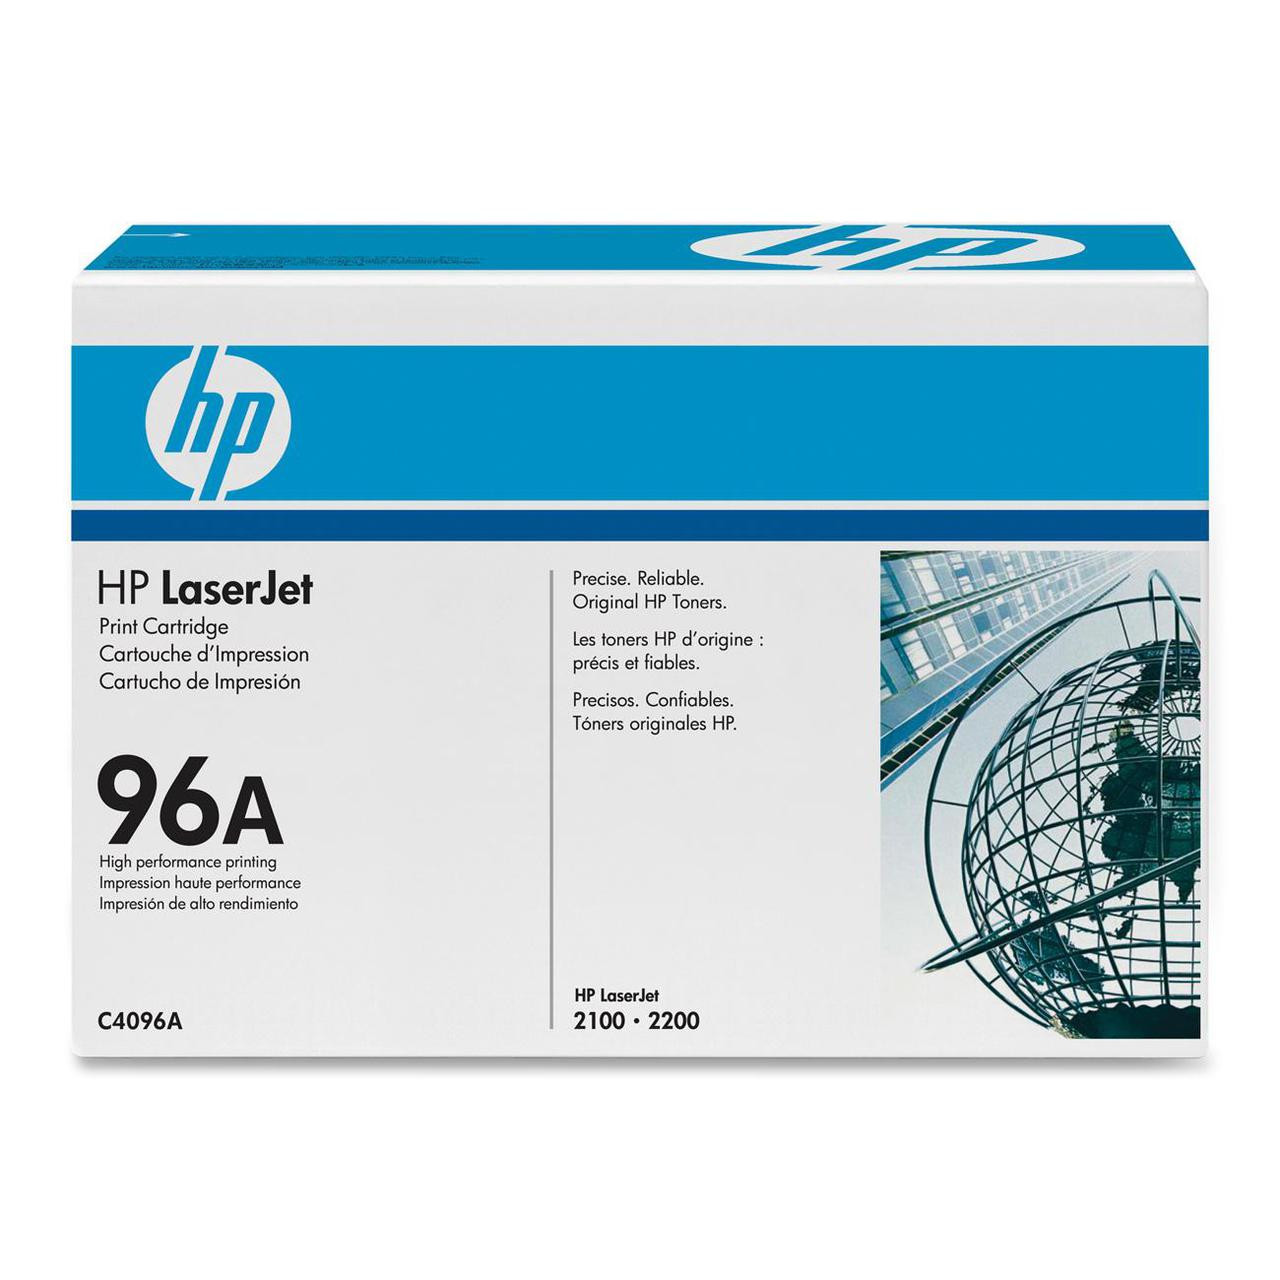 HP 2100 2200 Toner Cartridge - New